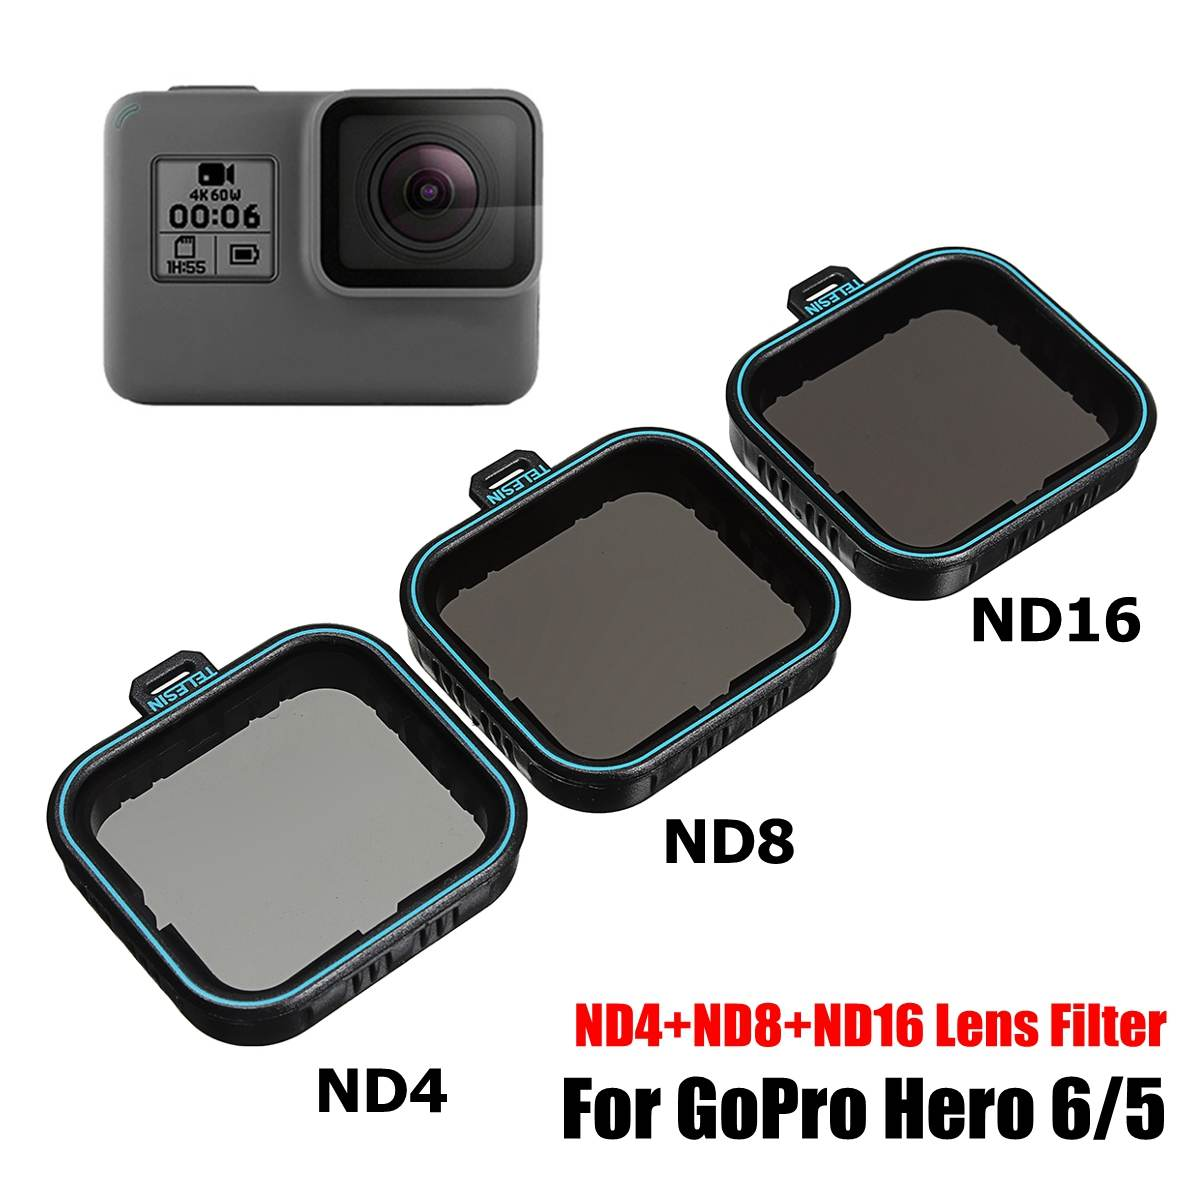 3 Pack Fiter Set ND Lens Protector Filter(ND4 8 16)+ CPL Filter for Gopro Hero 5 Hero 6 Black Hero 7 Camera Accessoreis3 Pack Fiter Set ND Lens Protector Filter(ND4 8 16)+ CPL Filter for Gopro Hero 5 Hero 6 Black Hero 7 Camera Accessoreis